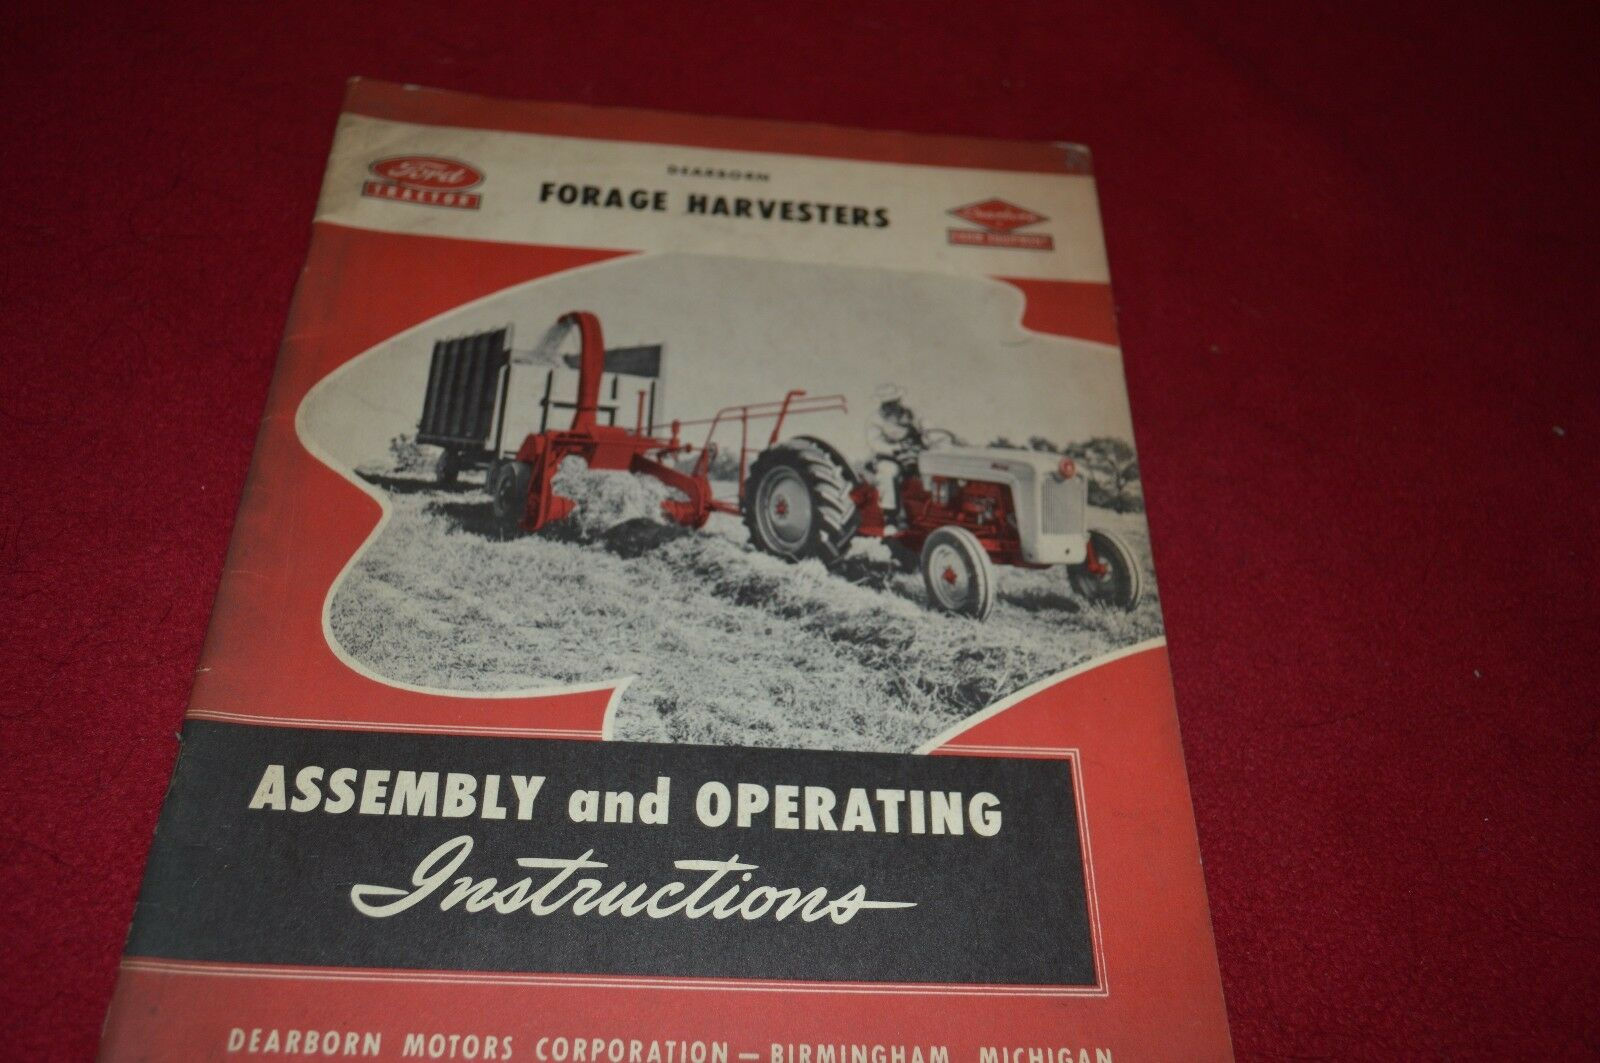 Ford Tractor Forage Harvester Operators Manual Dcpa5 1529 Yt16 Wiring Diagram 1 Of 1only Available